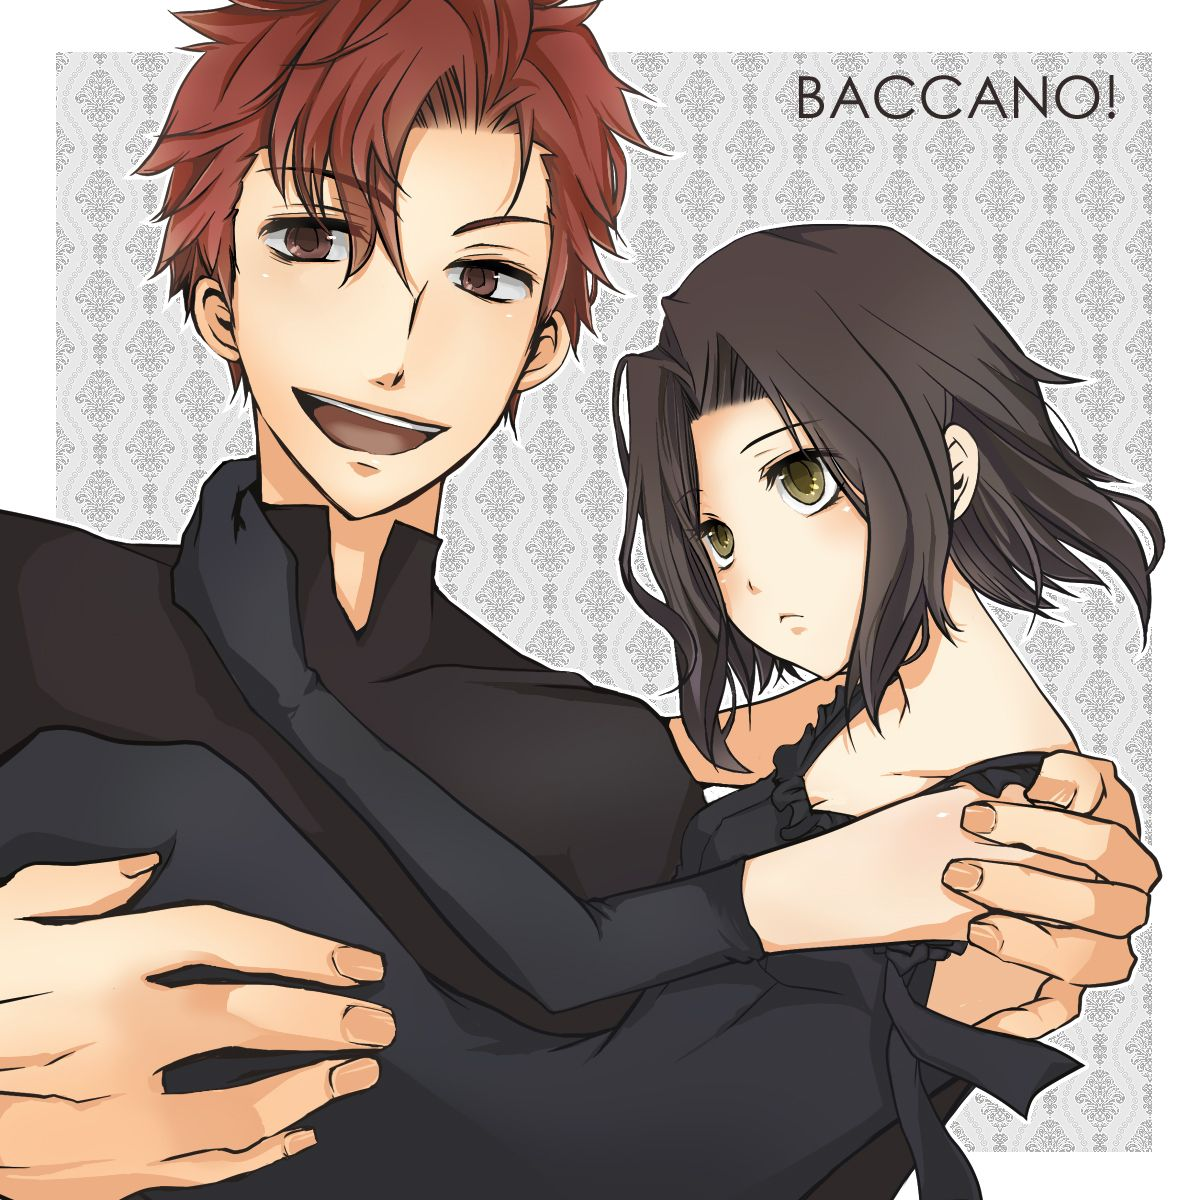 Tags: Fanart, Baccano!, Chane Laforet, Claire Stanfield